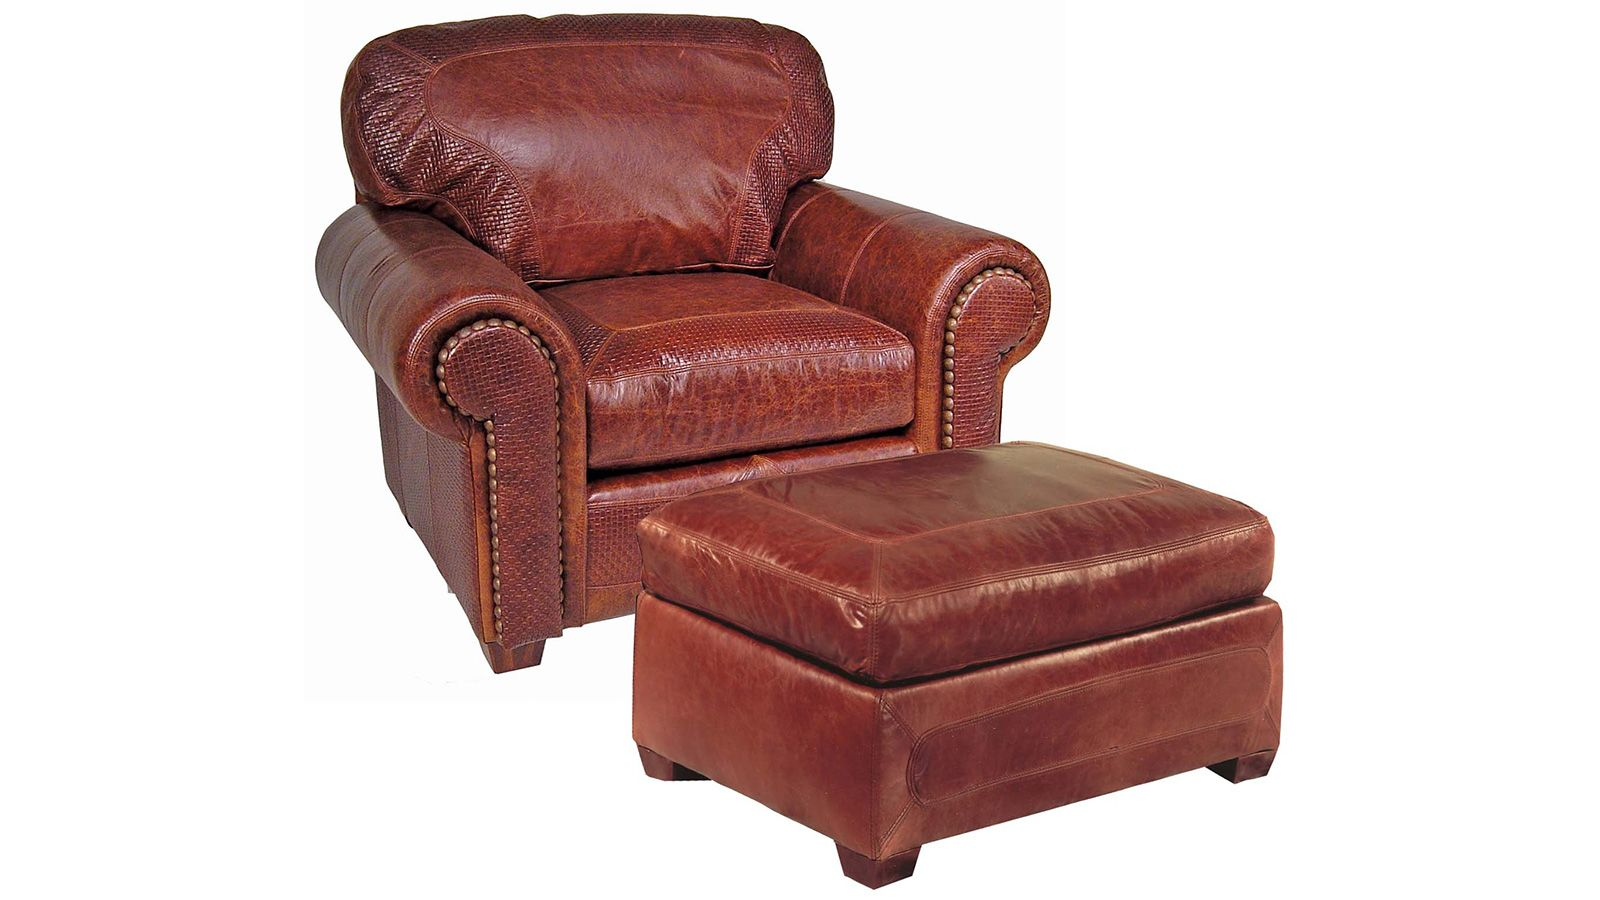 Stickley Santa Fe Chair & Ottoman, , large